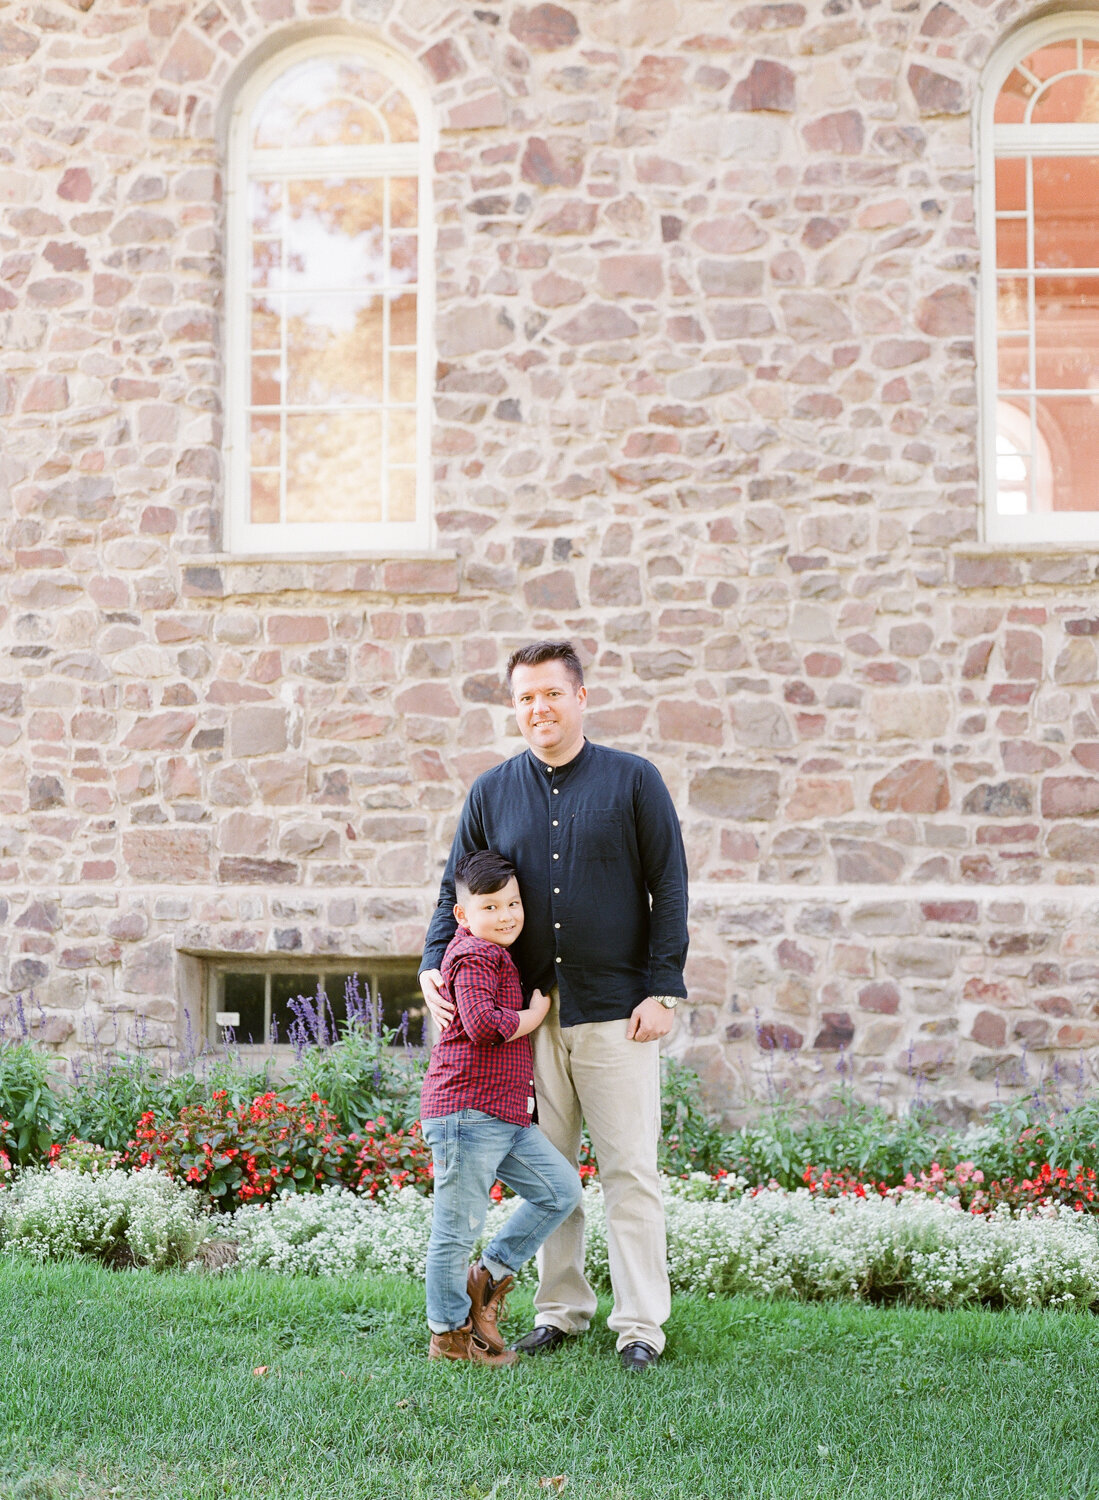 Jacqueline Anne Photography - Family Photographer in Halifax-24